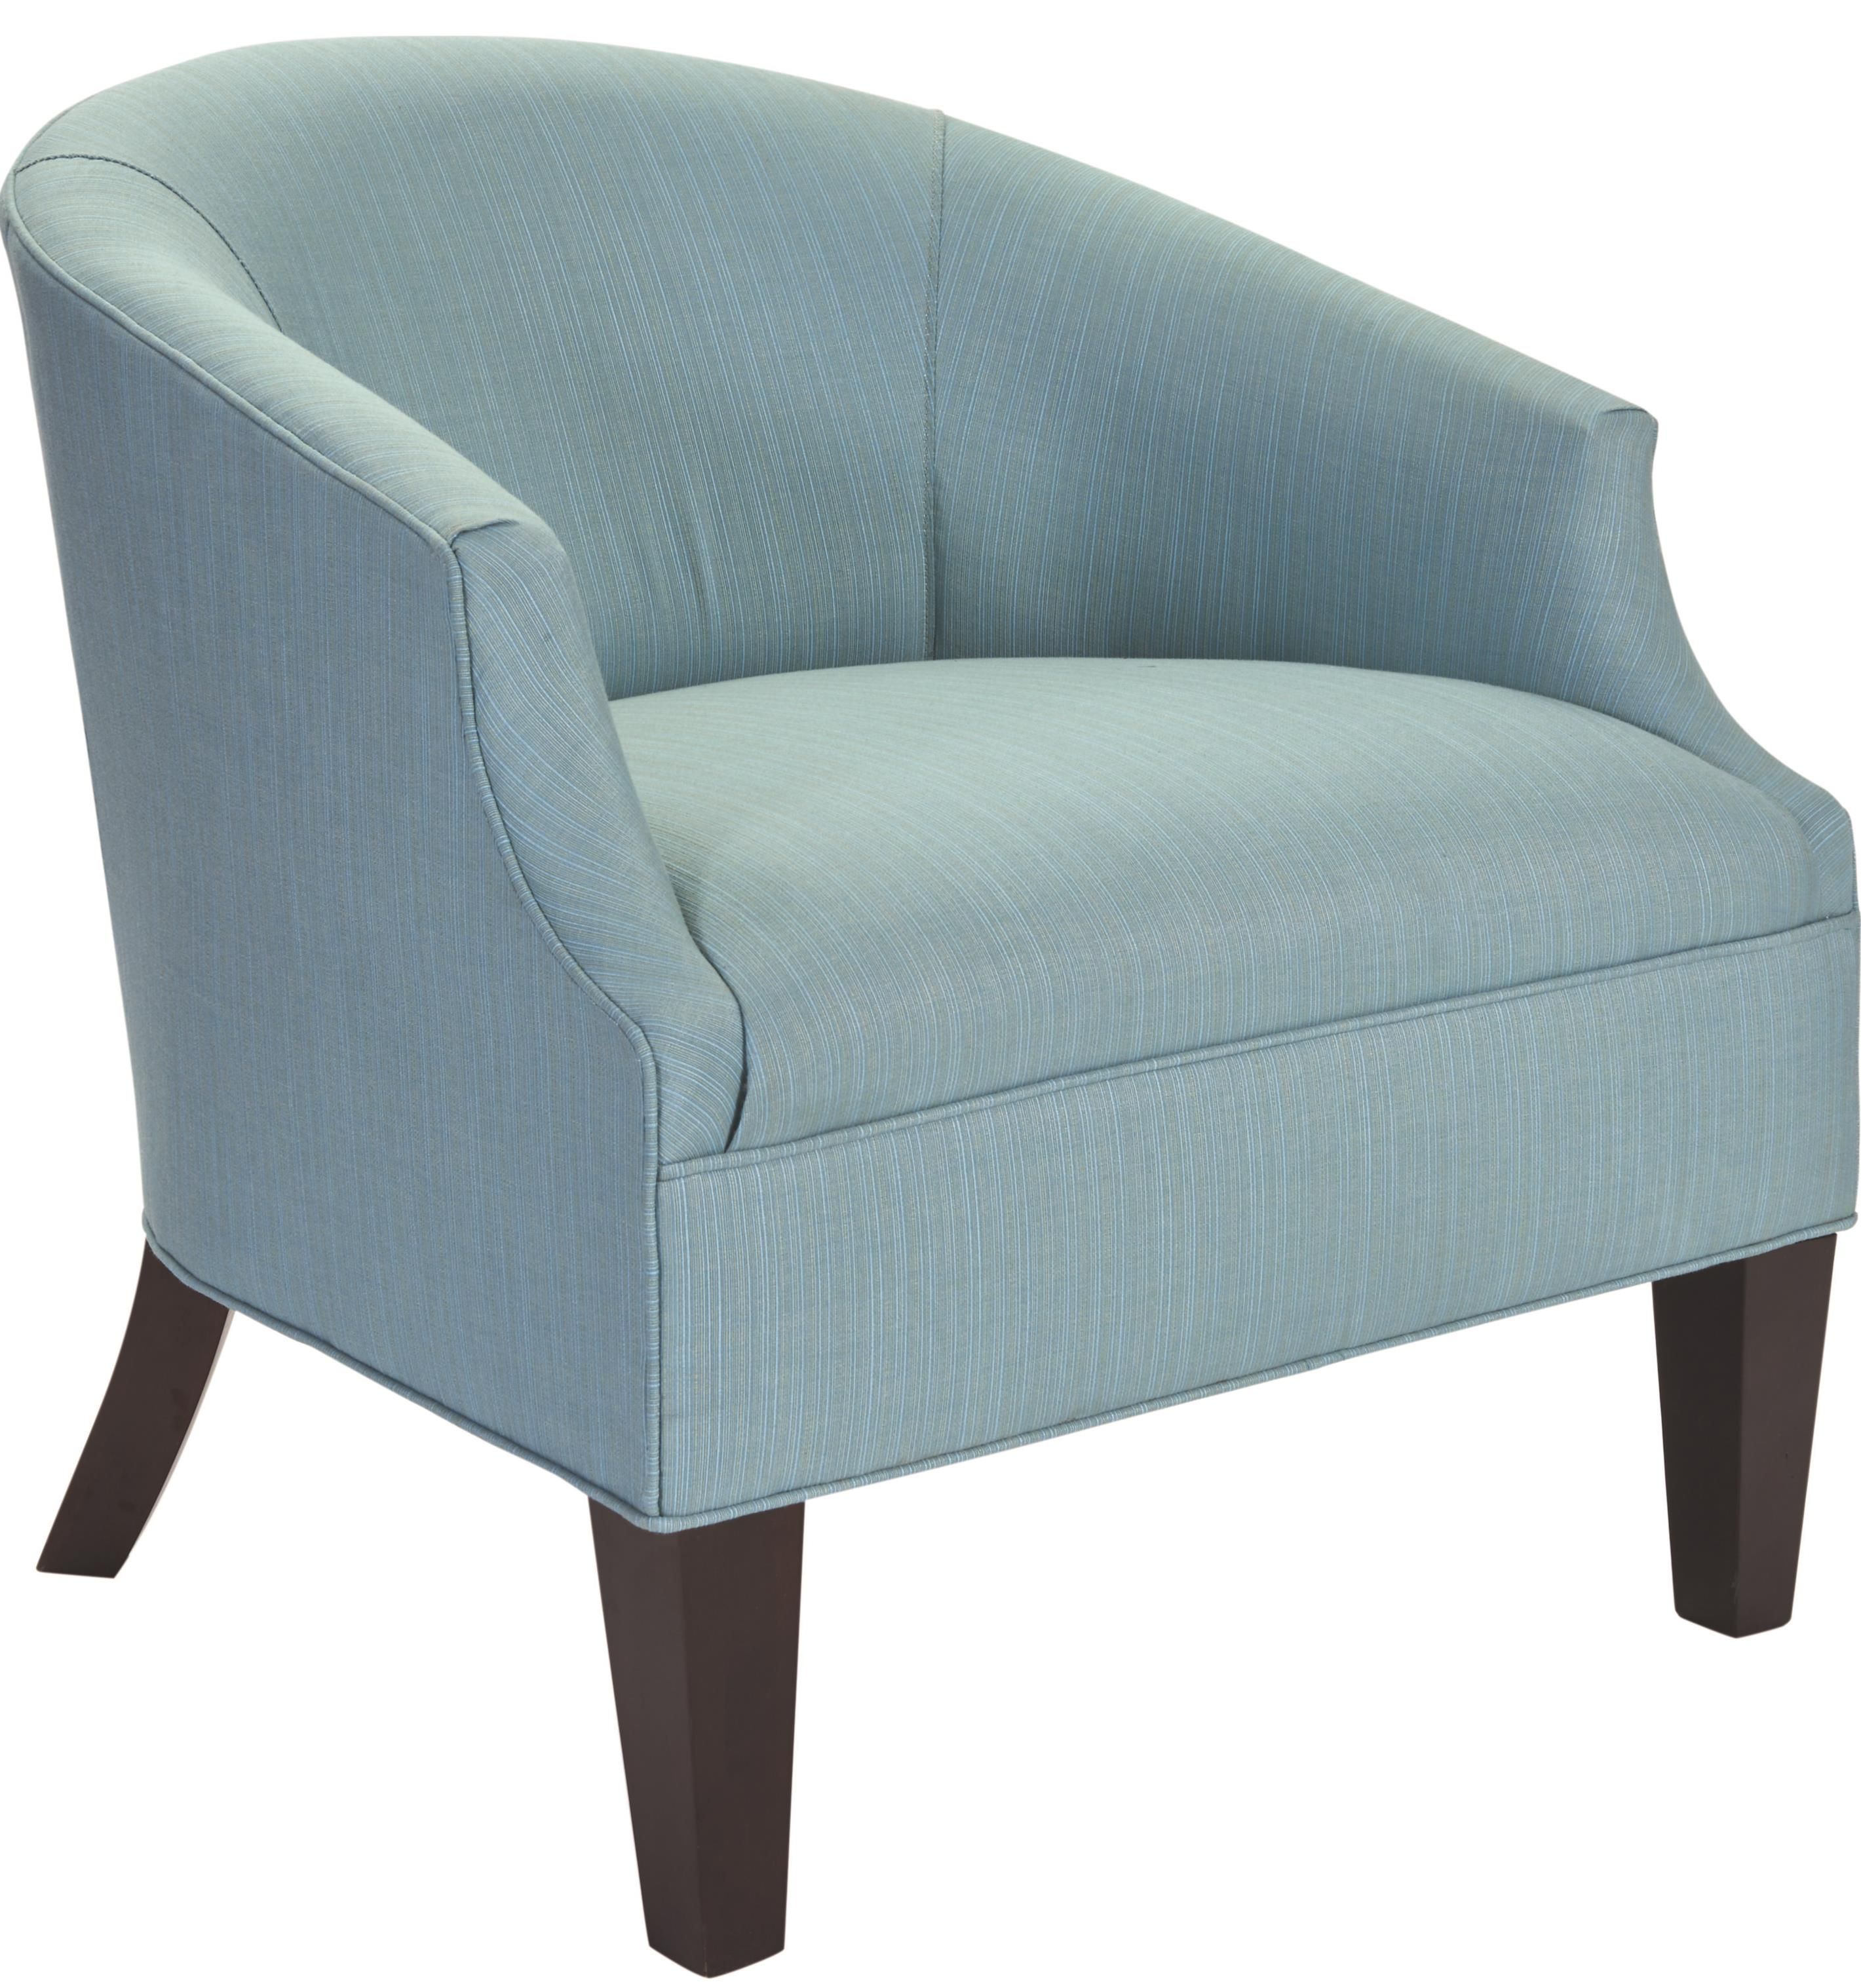 Broyhill Furniture Aidy Contemporary Chair - Item Number: 9048-0-8067-0000